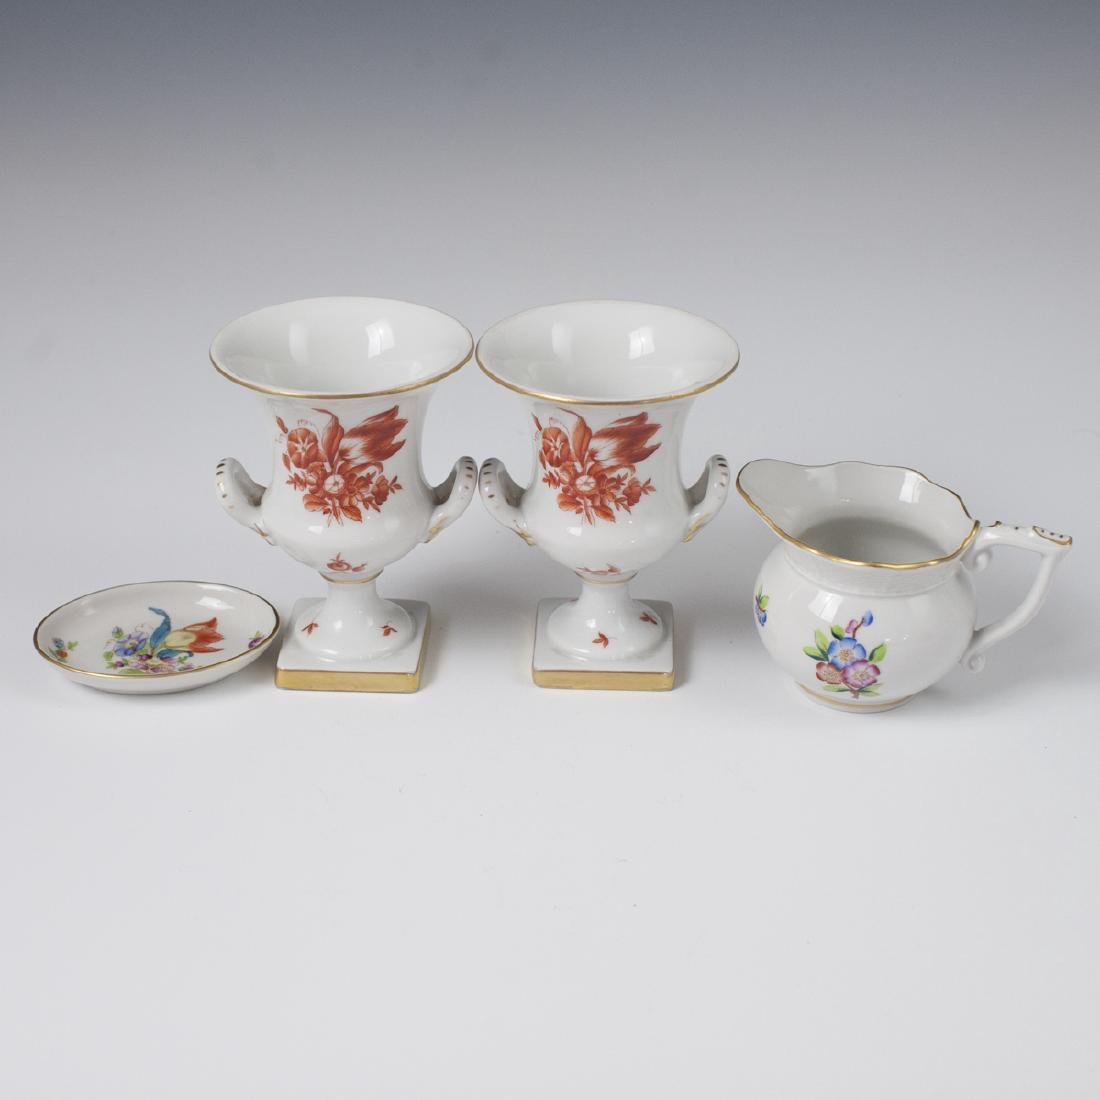 Herend Porcelain Set